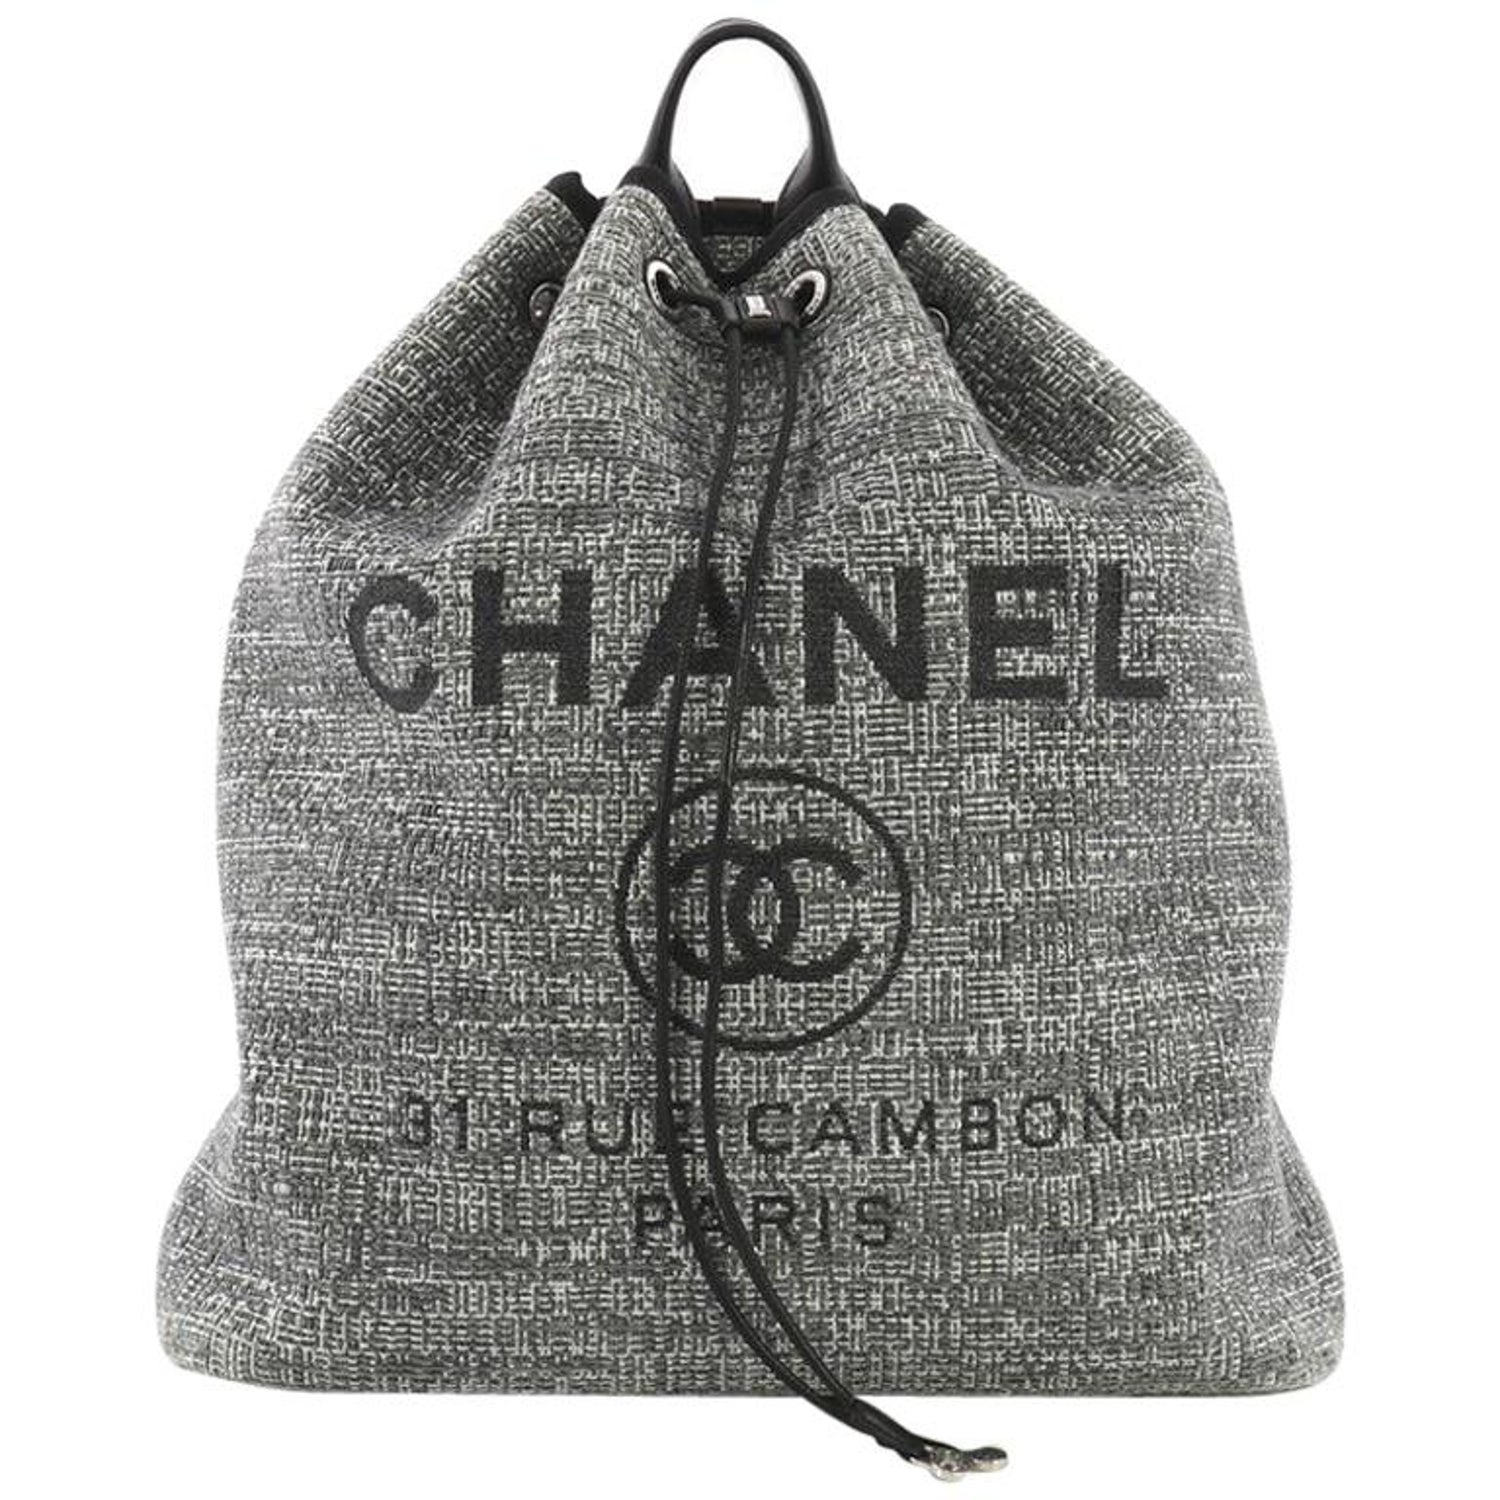 f43e0a5e6 Chanel Deauville Backpack Raffia Large at 1stdibs